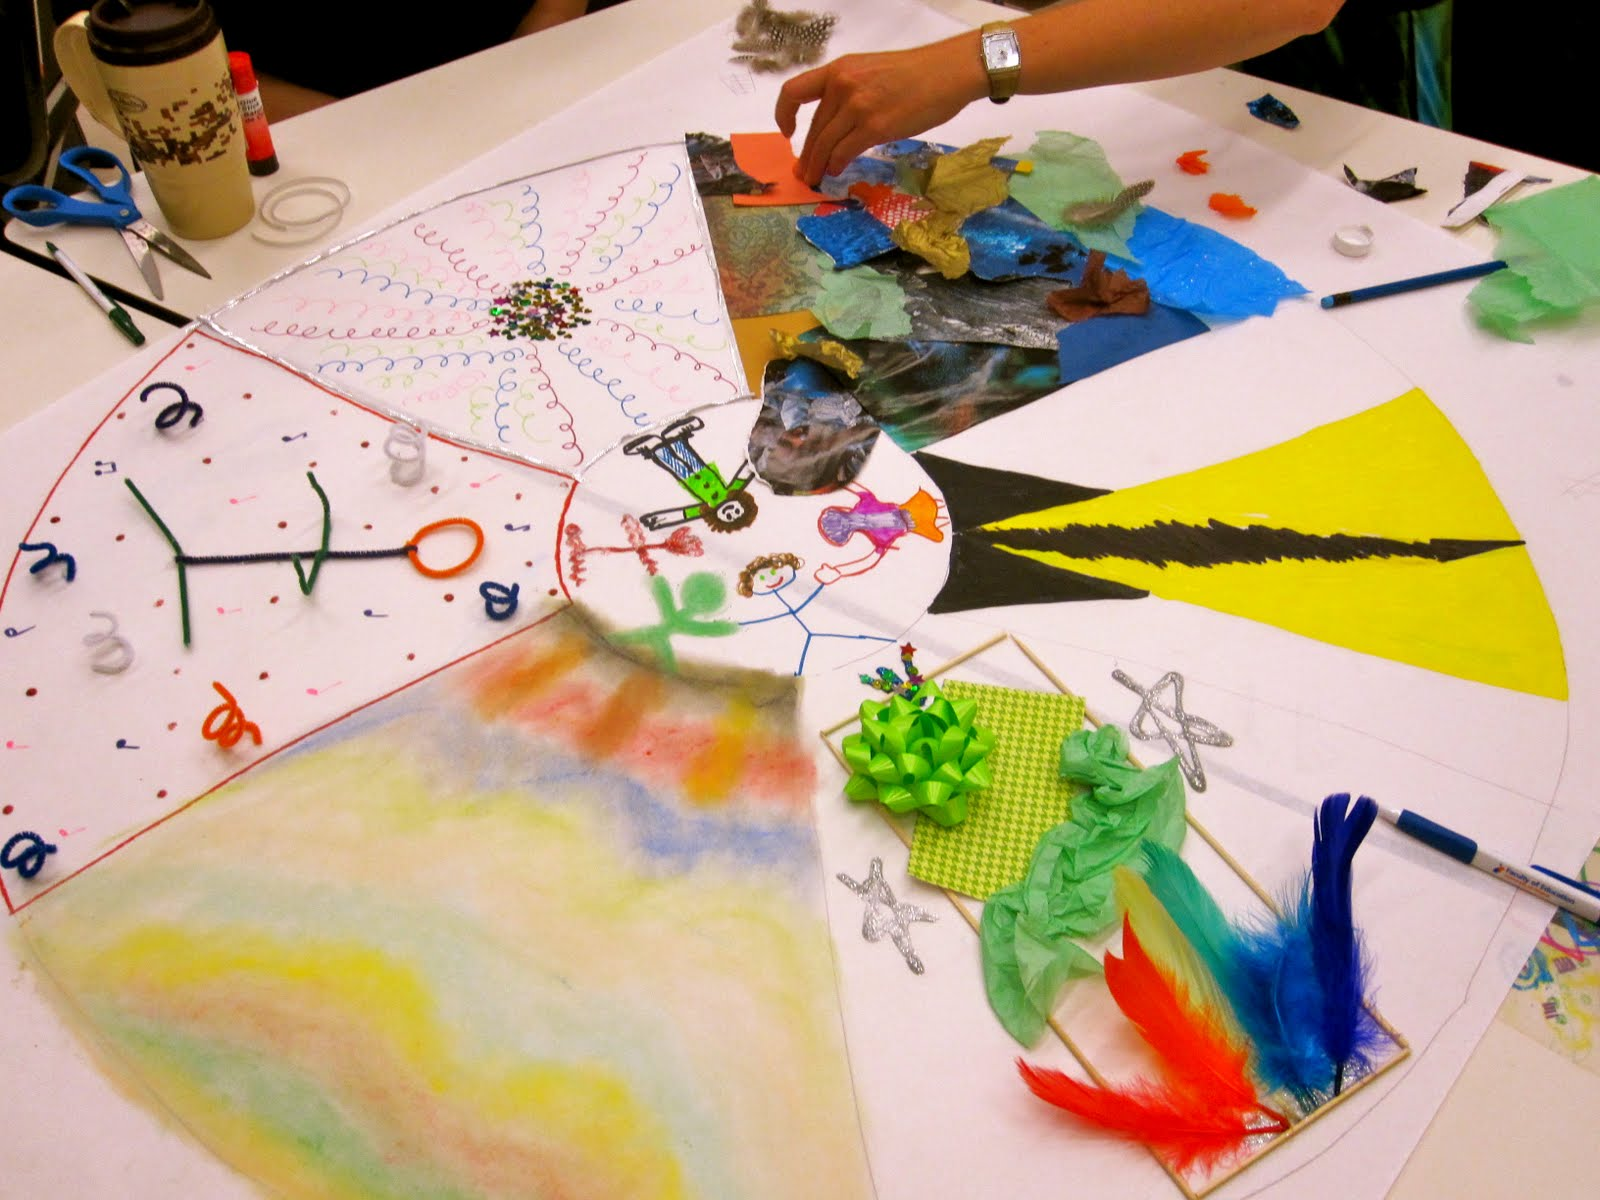 issues in art therapy with children essay Home free essays issues in art therapy with children by addressing common problems in a novel way, school-based art therapy therapy opens the doors to many children who otherwise would not receive the needed therapeutic help.